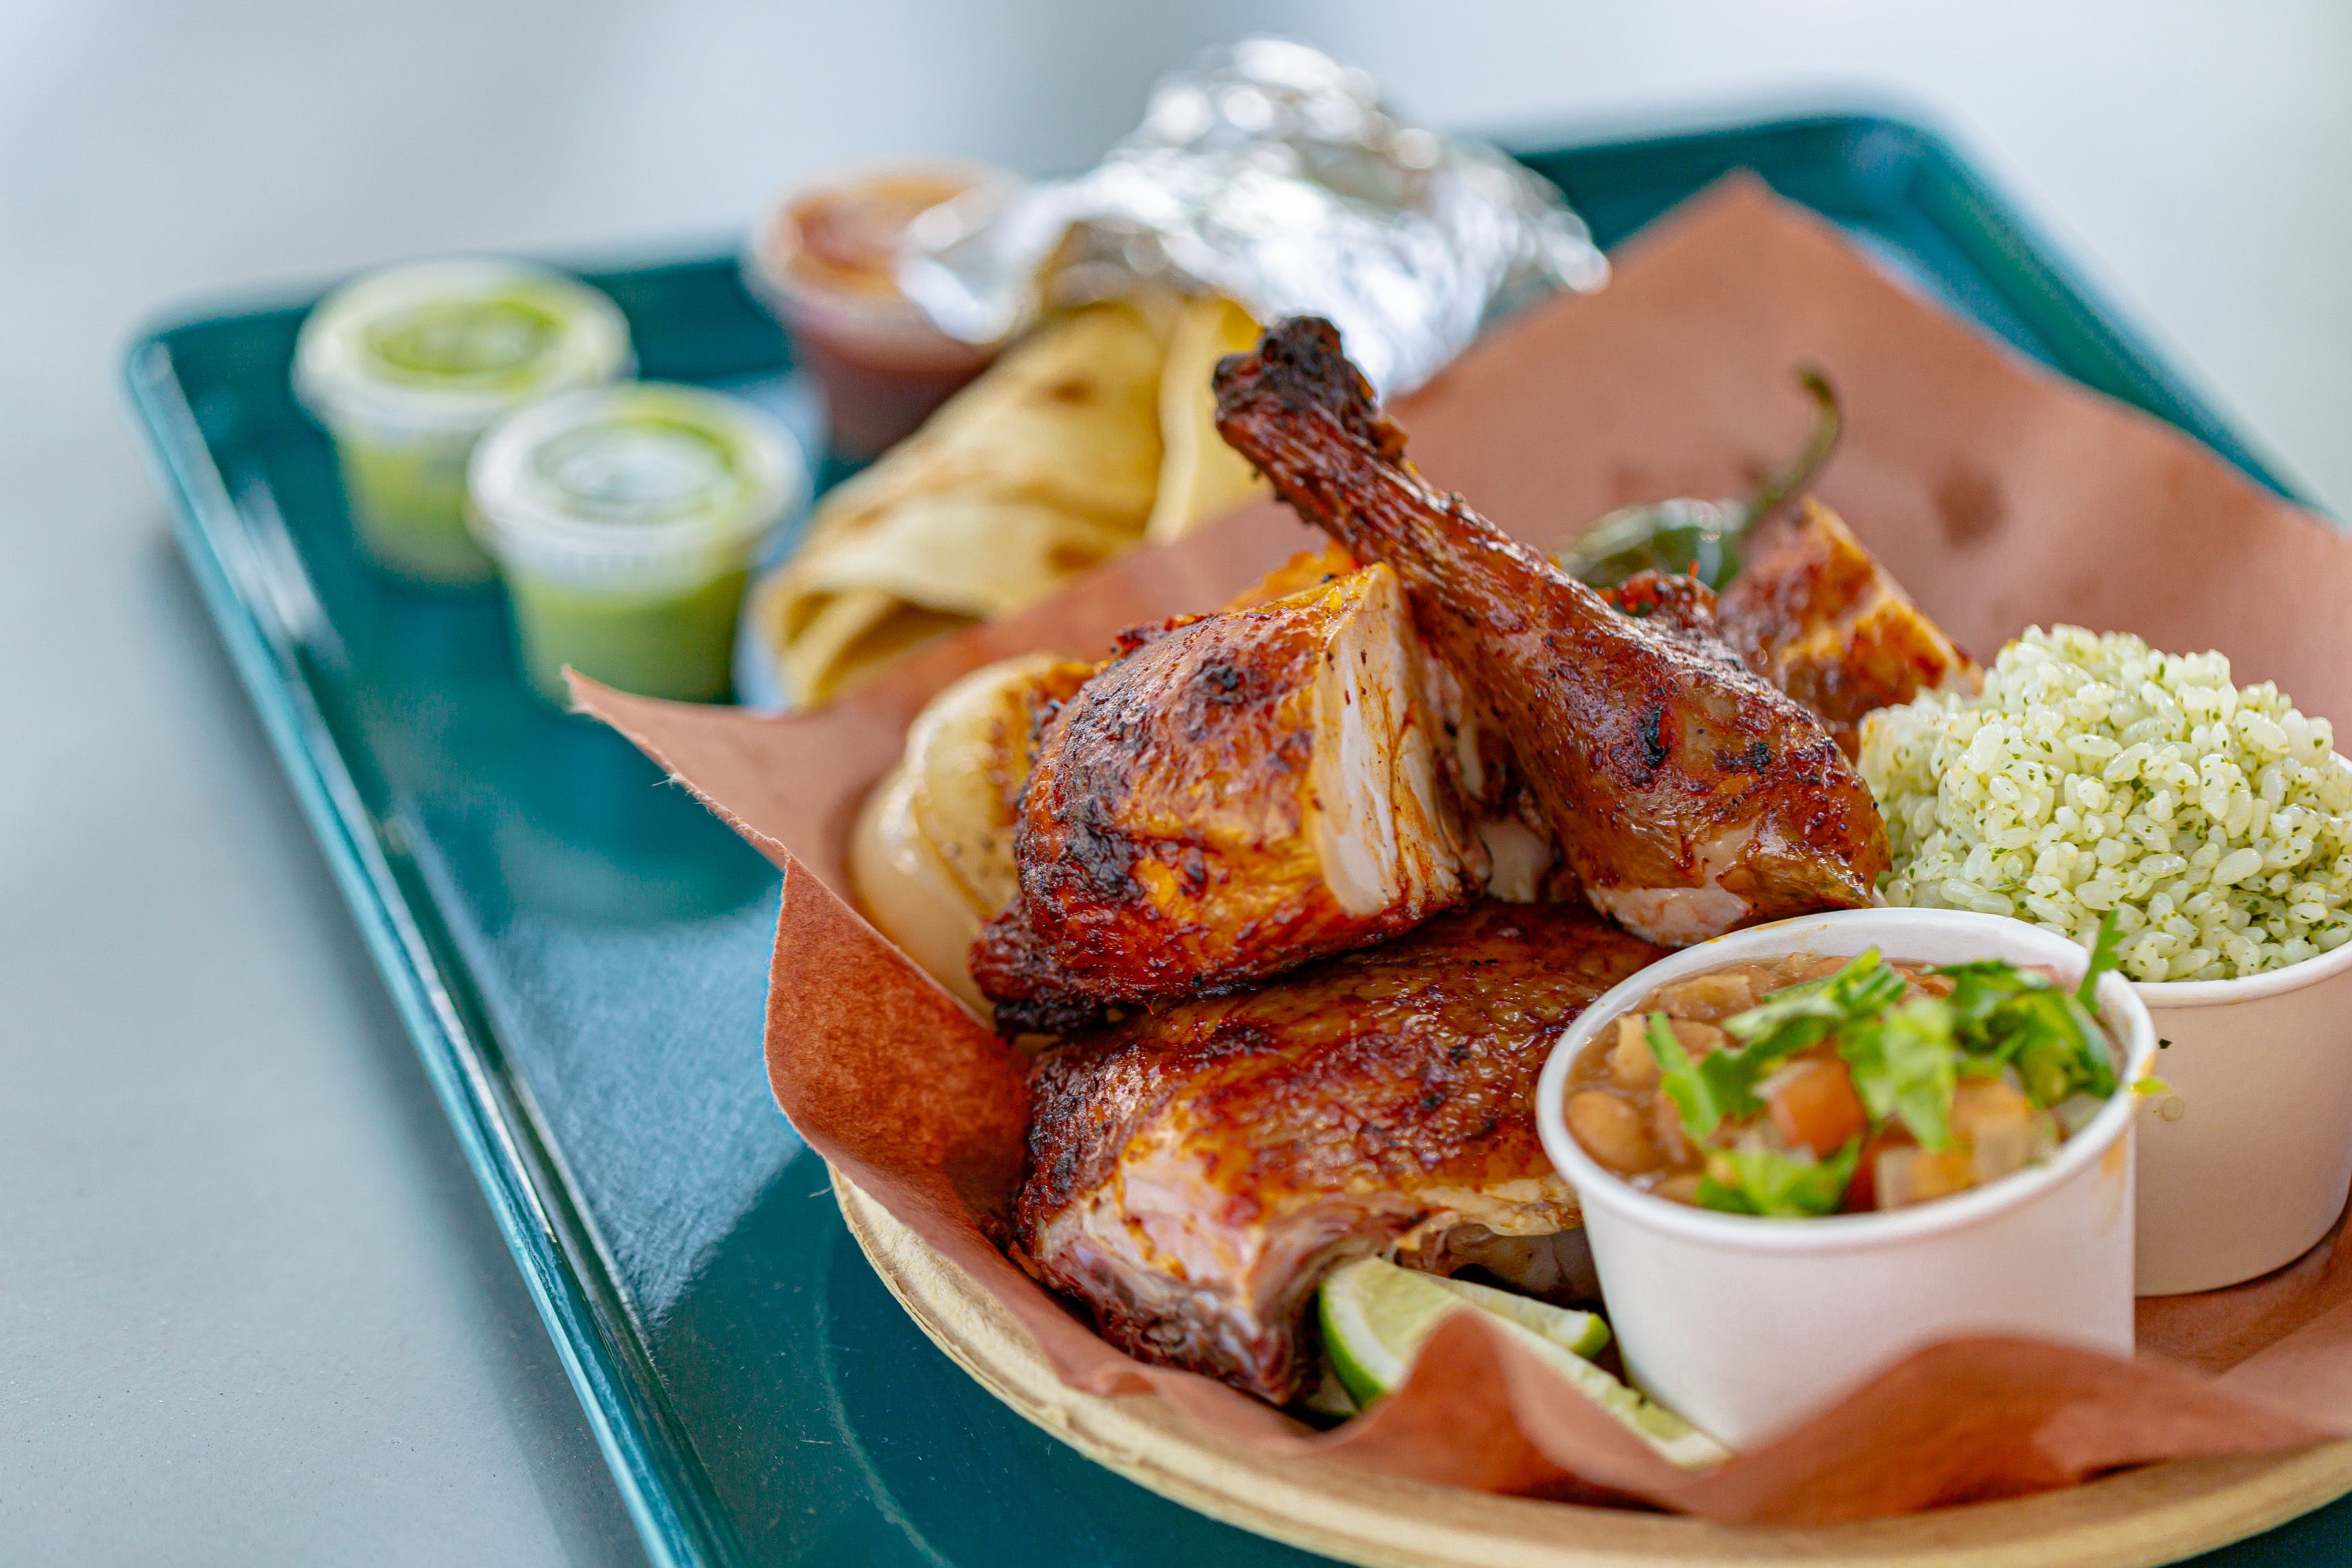 A quarter chicken al carbon at Little Rey with corn or flour tortillas, smoked onions and jalapenos, ranch beans, and cilantro rice